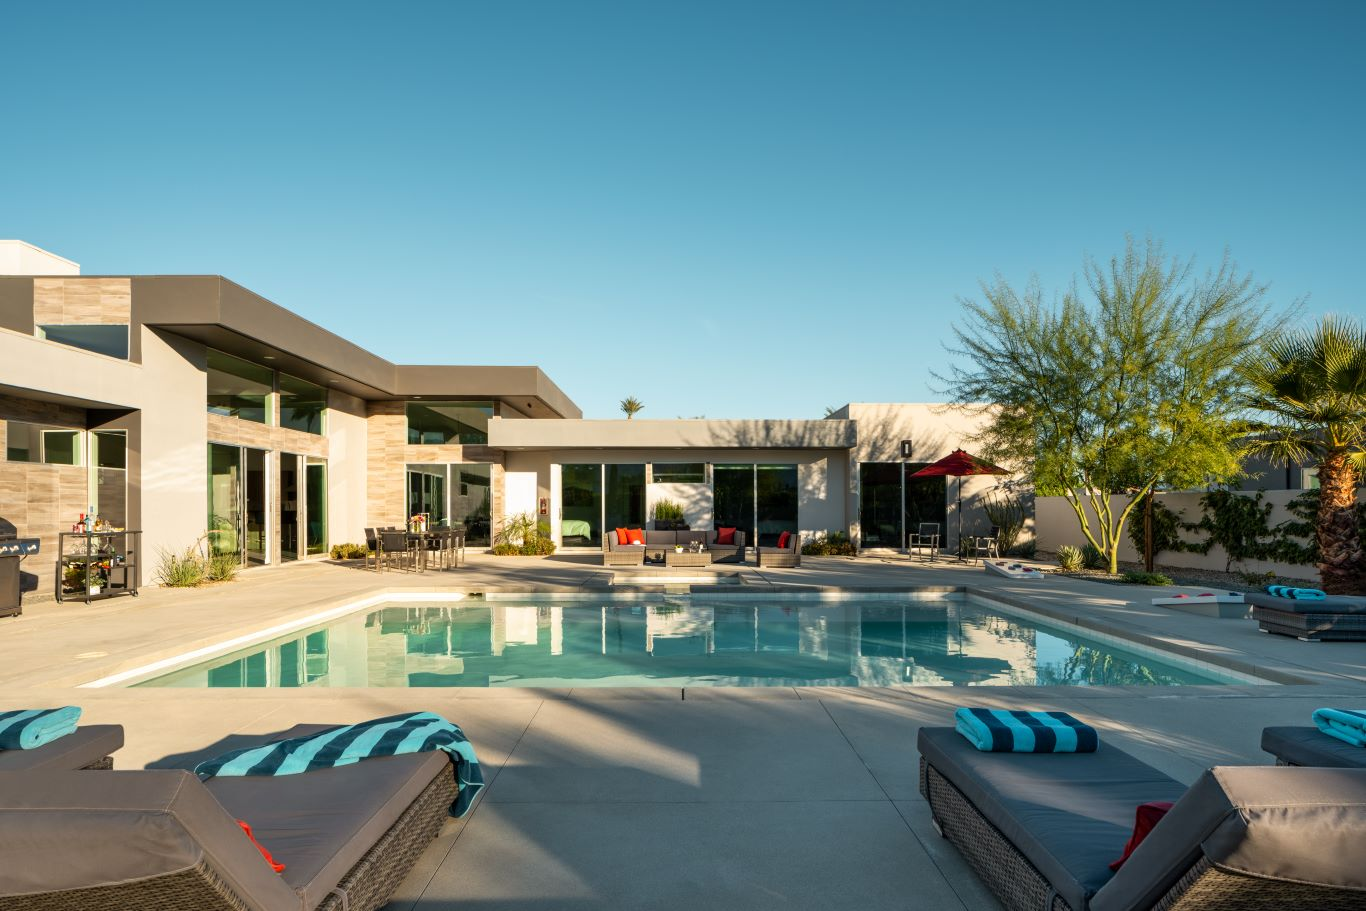 View over Pool to Back of House